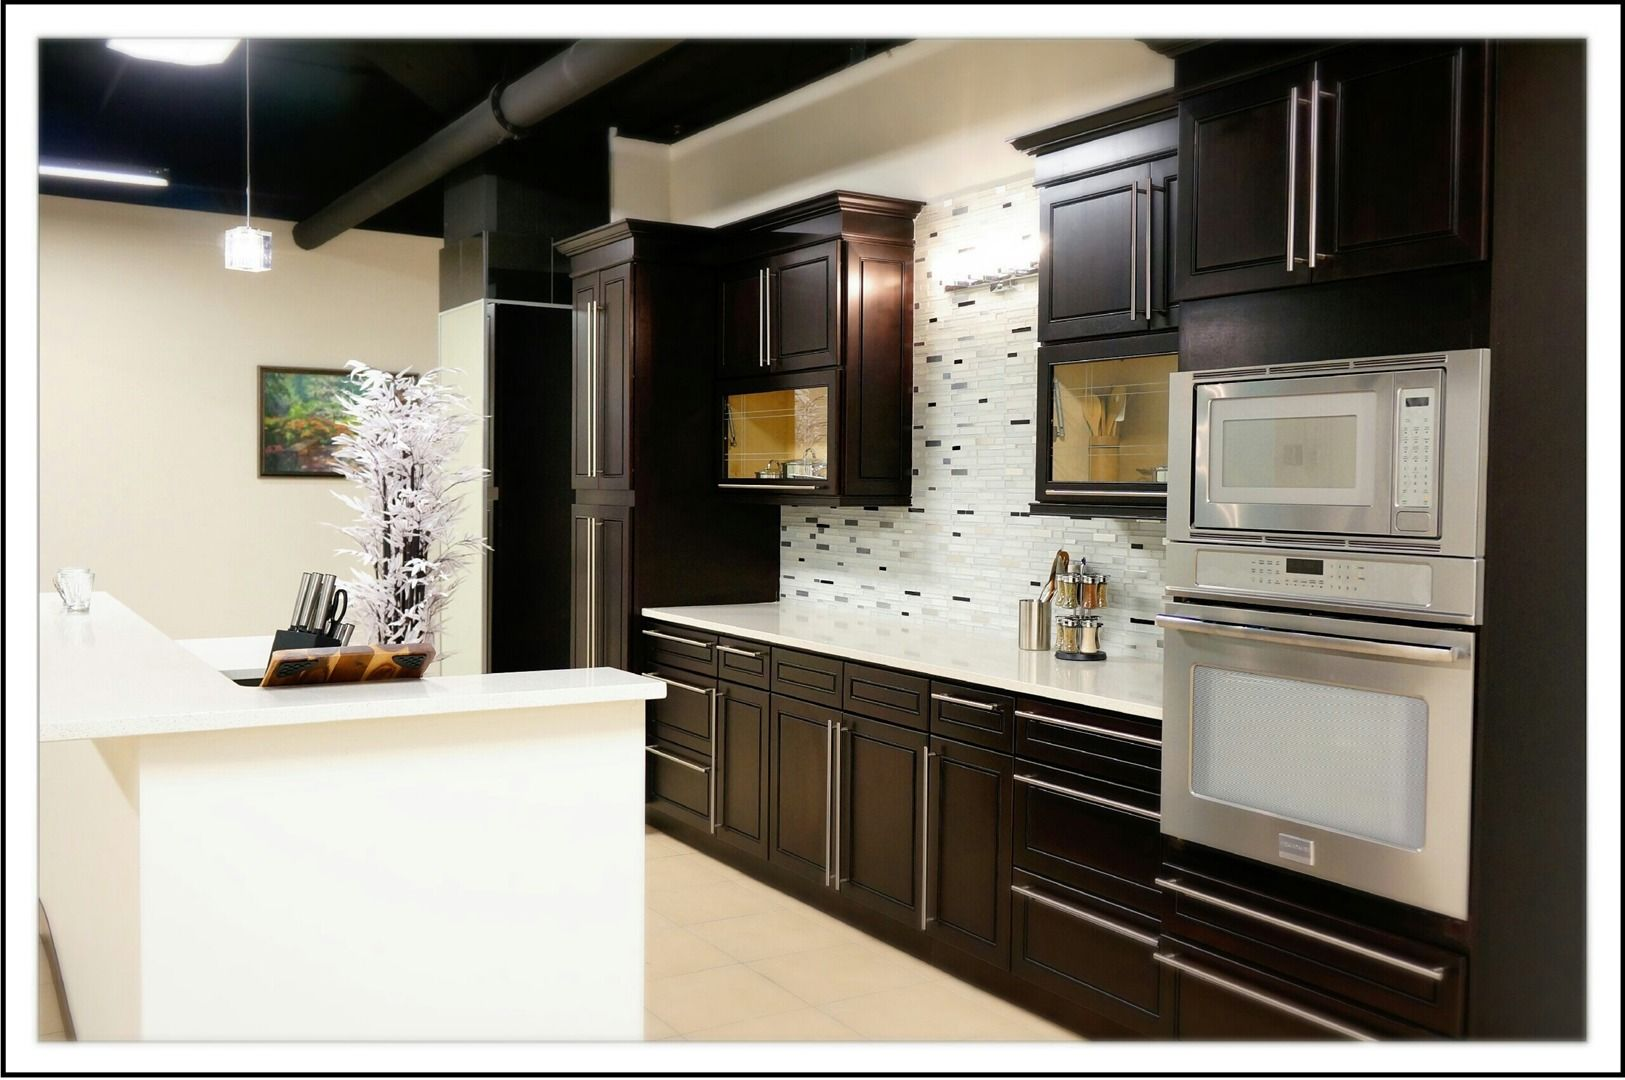 J K Wholesale Espresso Kitchen Cabinet Distributors In Tucson Az Are You Looking To Affordable Cabinets Espresso Kitchen Cabinets Wholesale Kitchen Cabinets